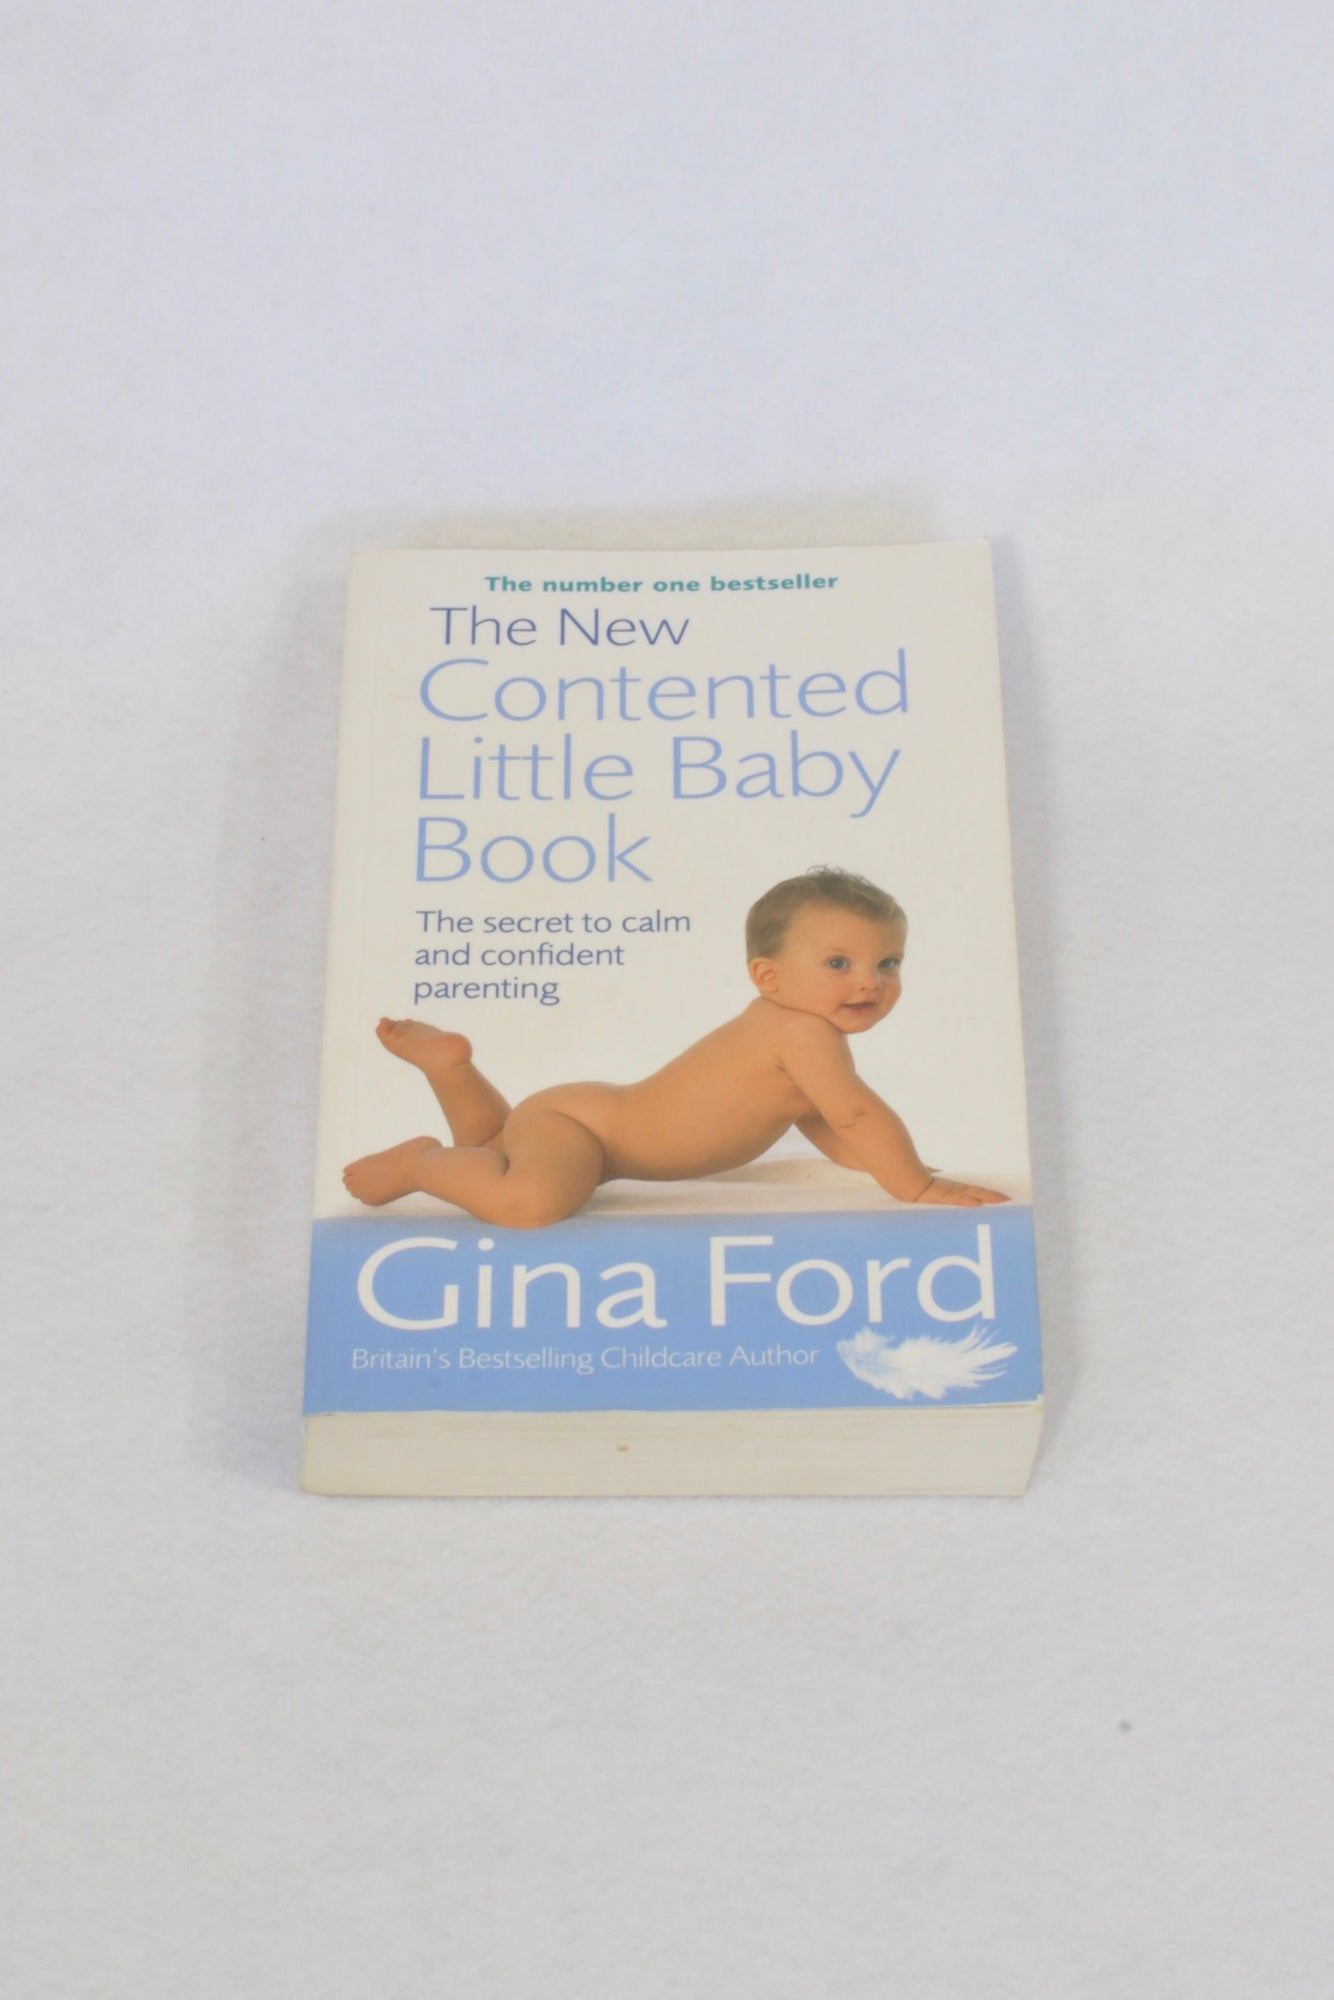 The New Contented Little Baby Parenting Book Unisex N-B to 1 year